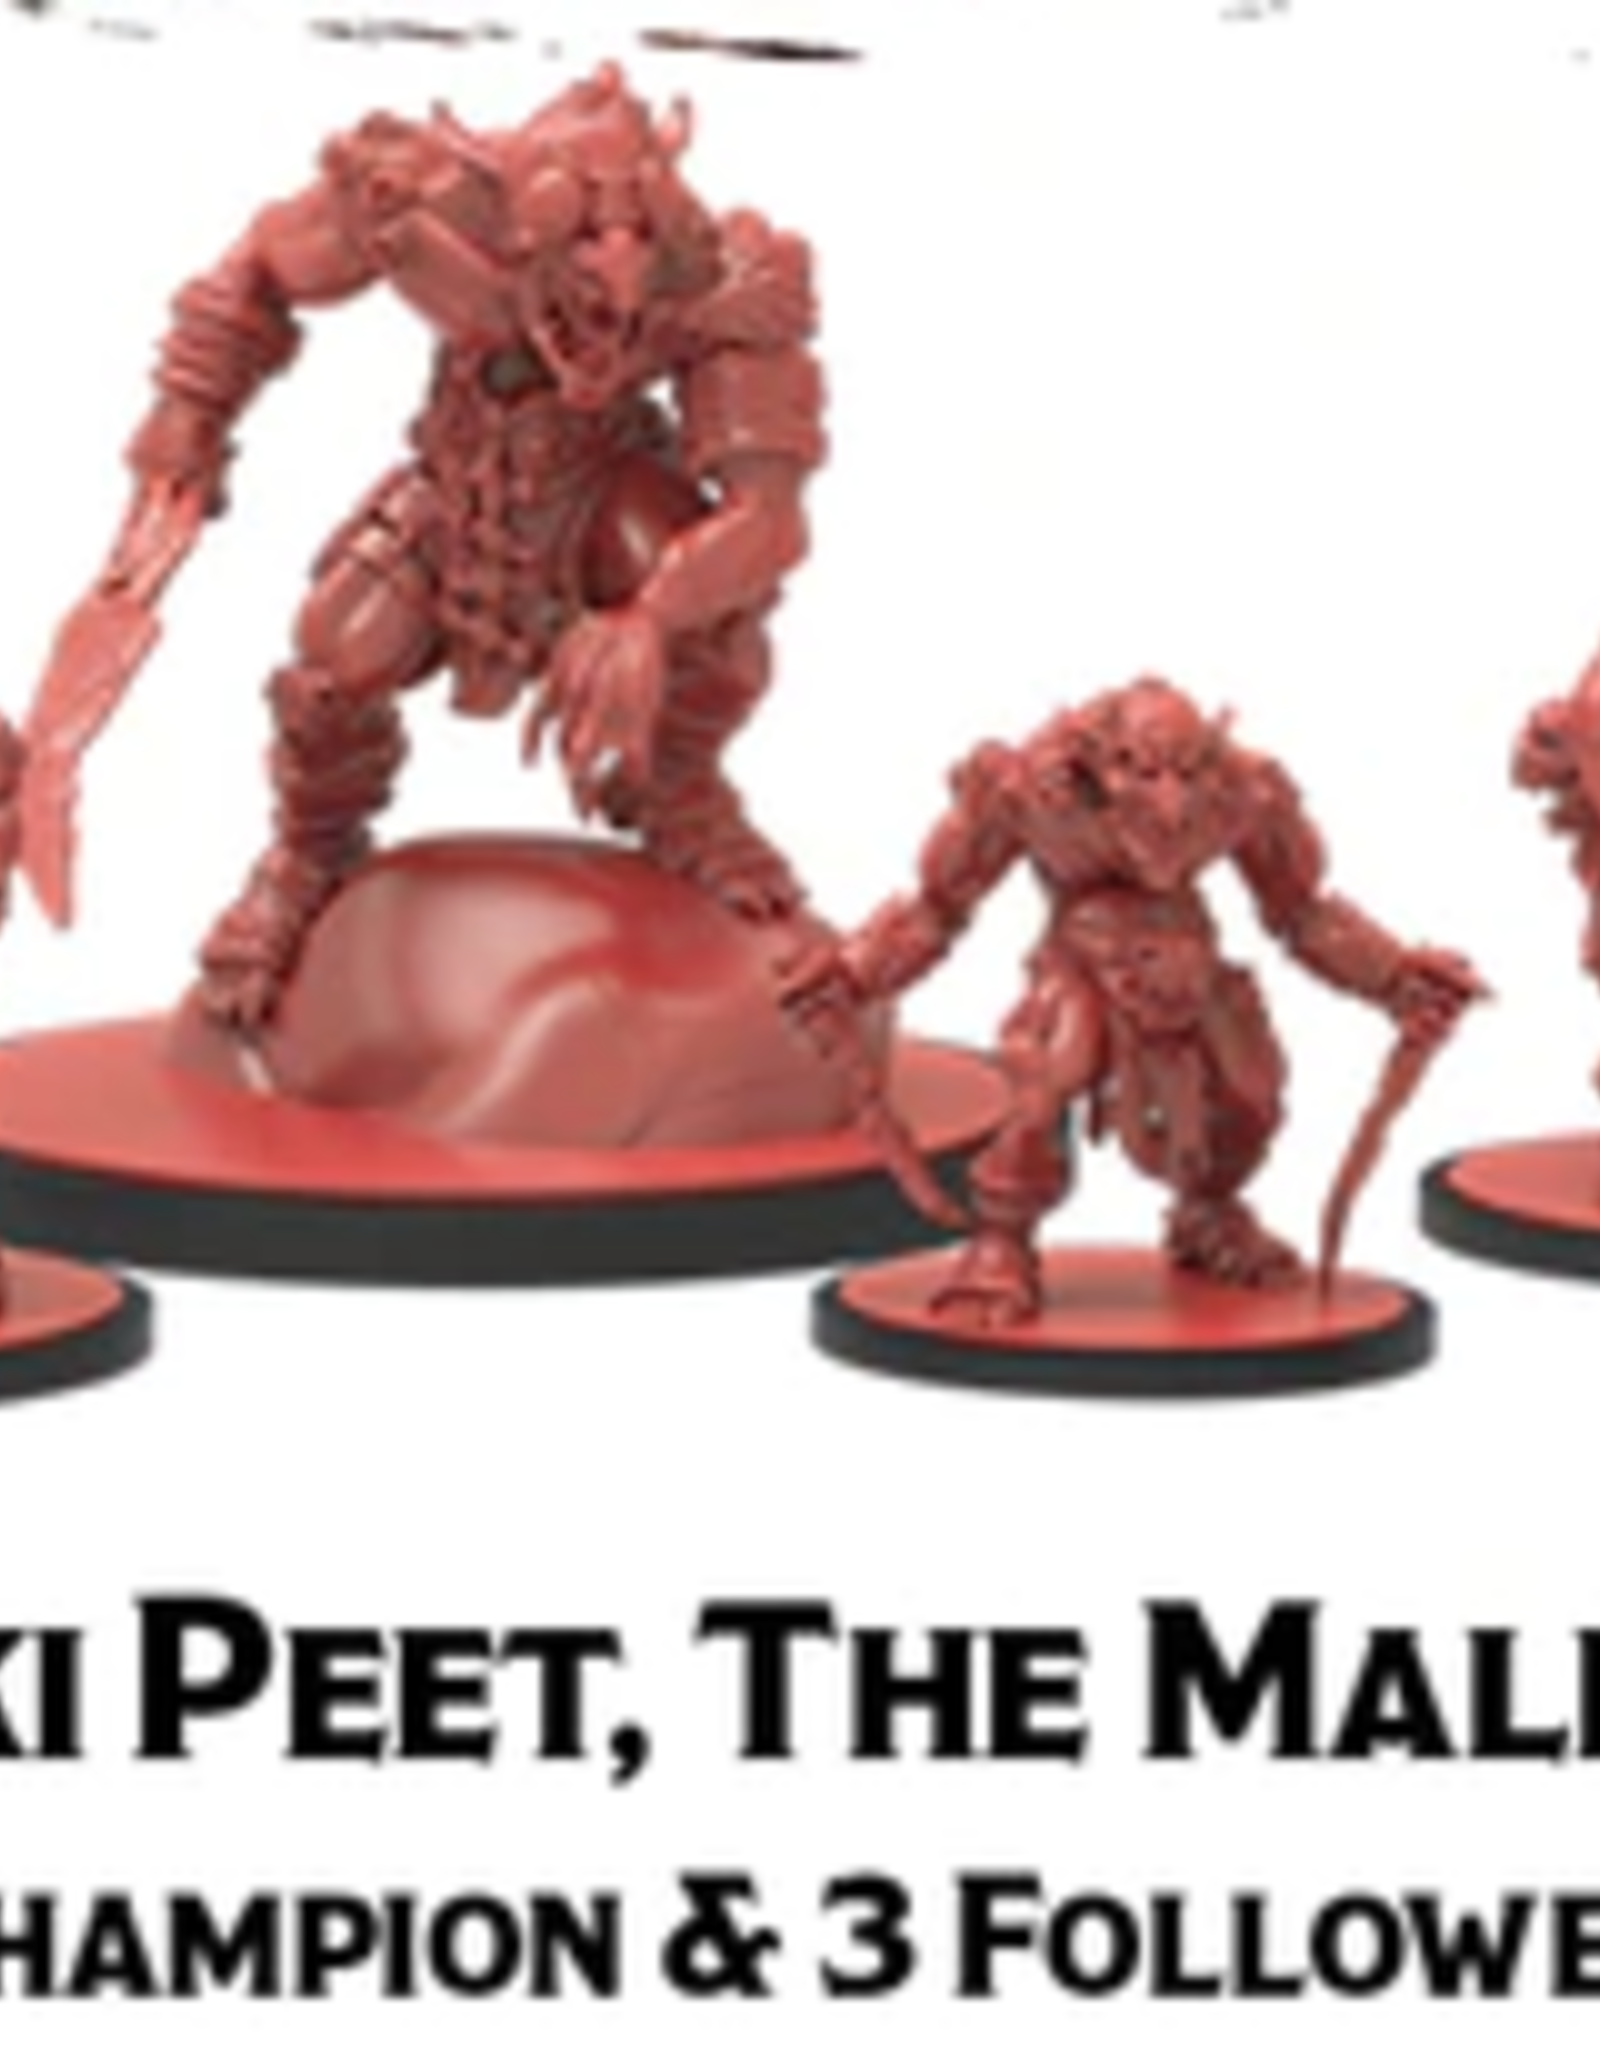 Guild Ball: Sneaky Peet, the Maligned